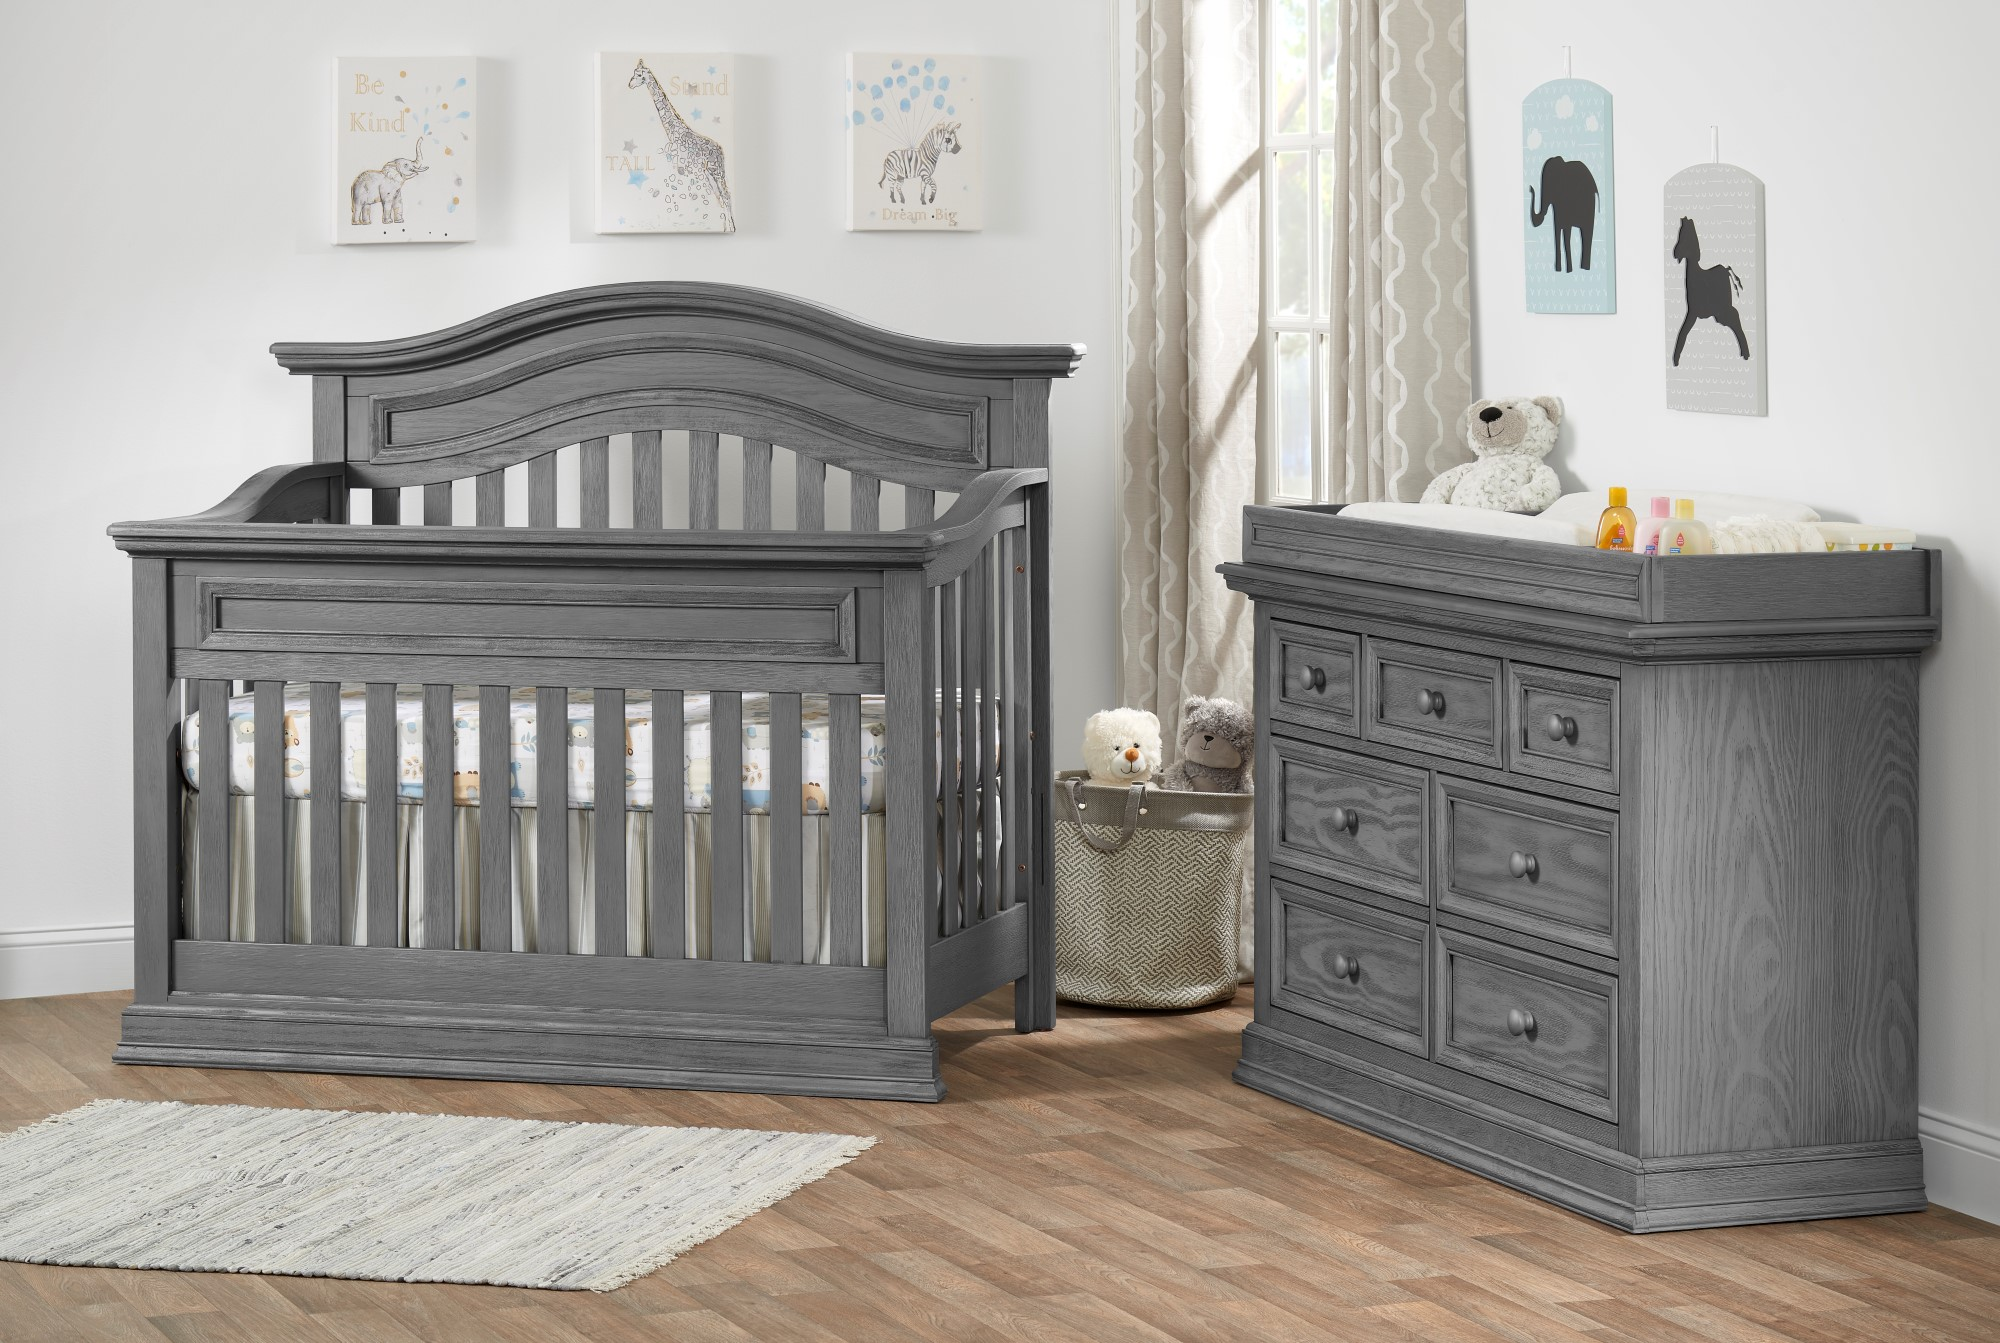 Glenbrook Graphite Gray Collection Oxford Baby Amp Kids